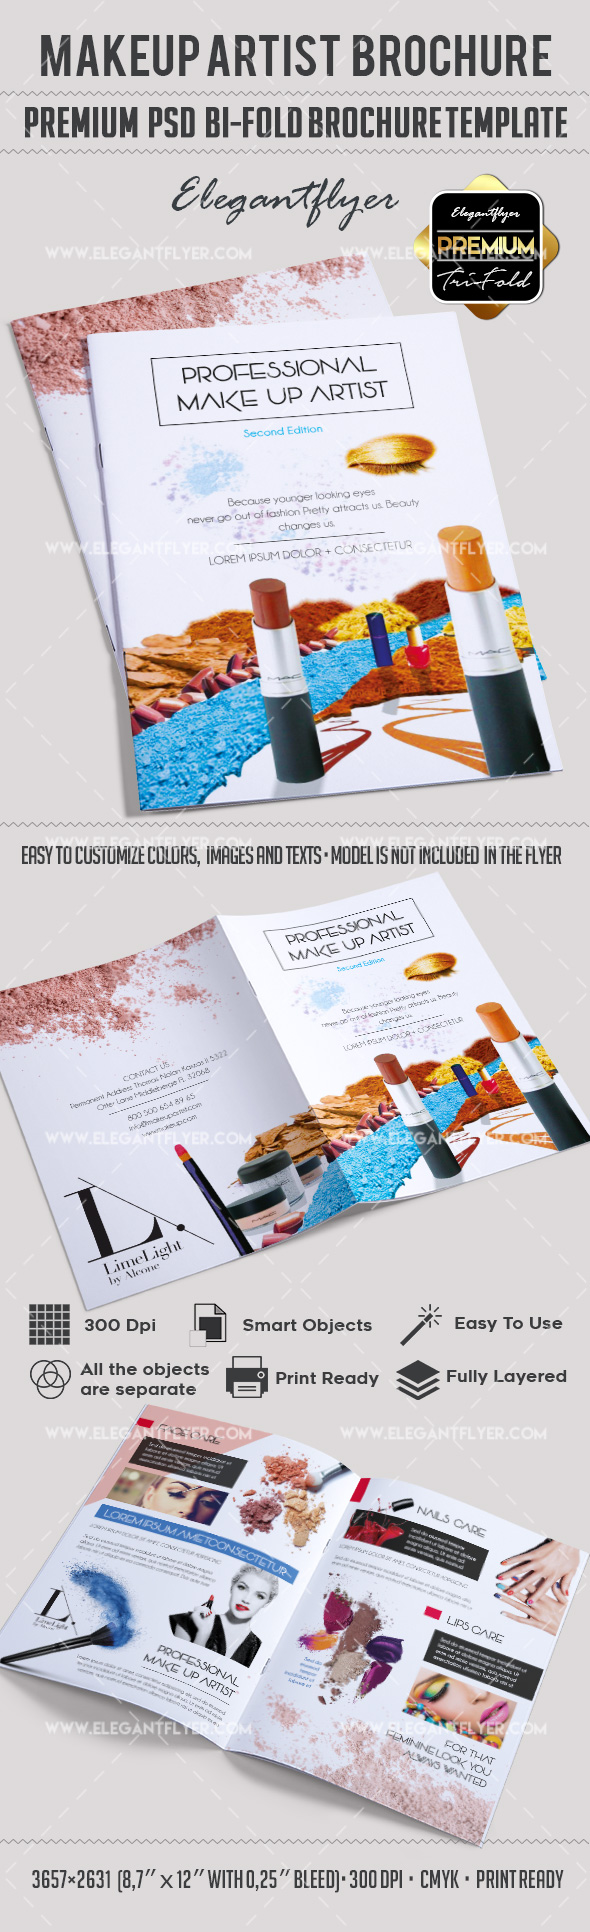 Brochure for Professional Makeup Artist